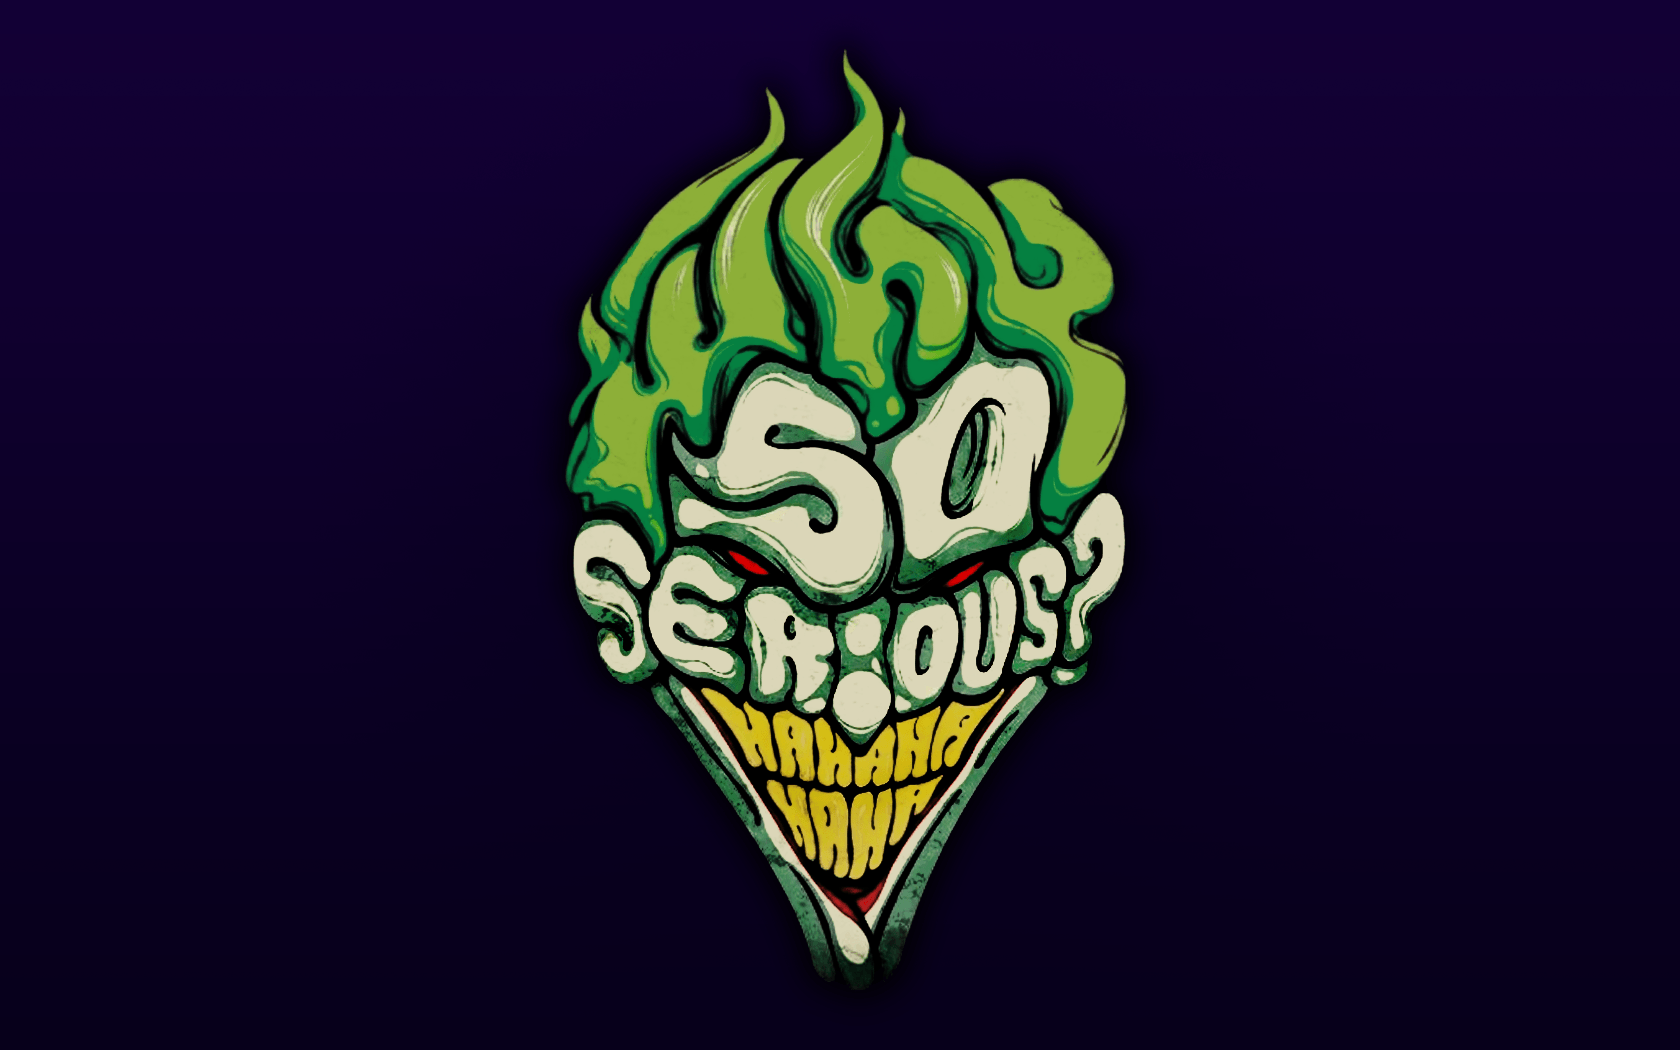 Joker Why So Serious Wallpapers HD 1080p